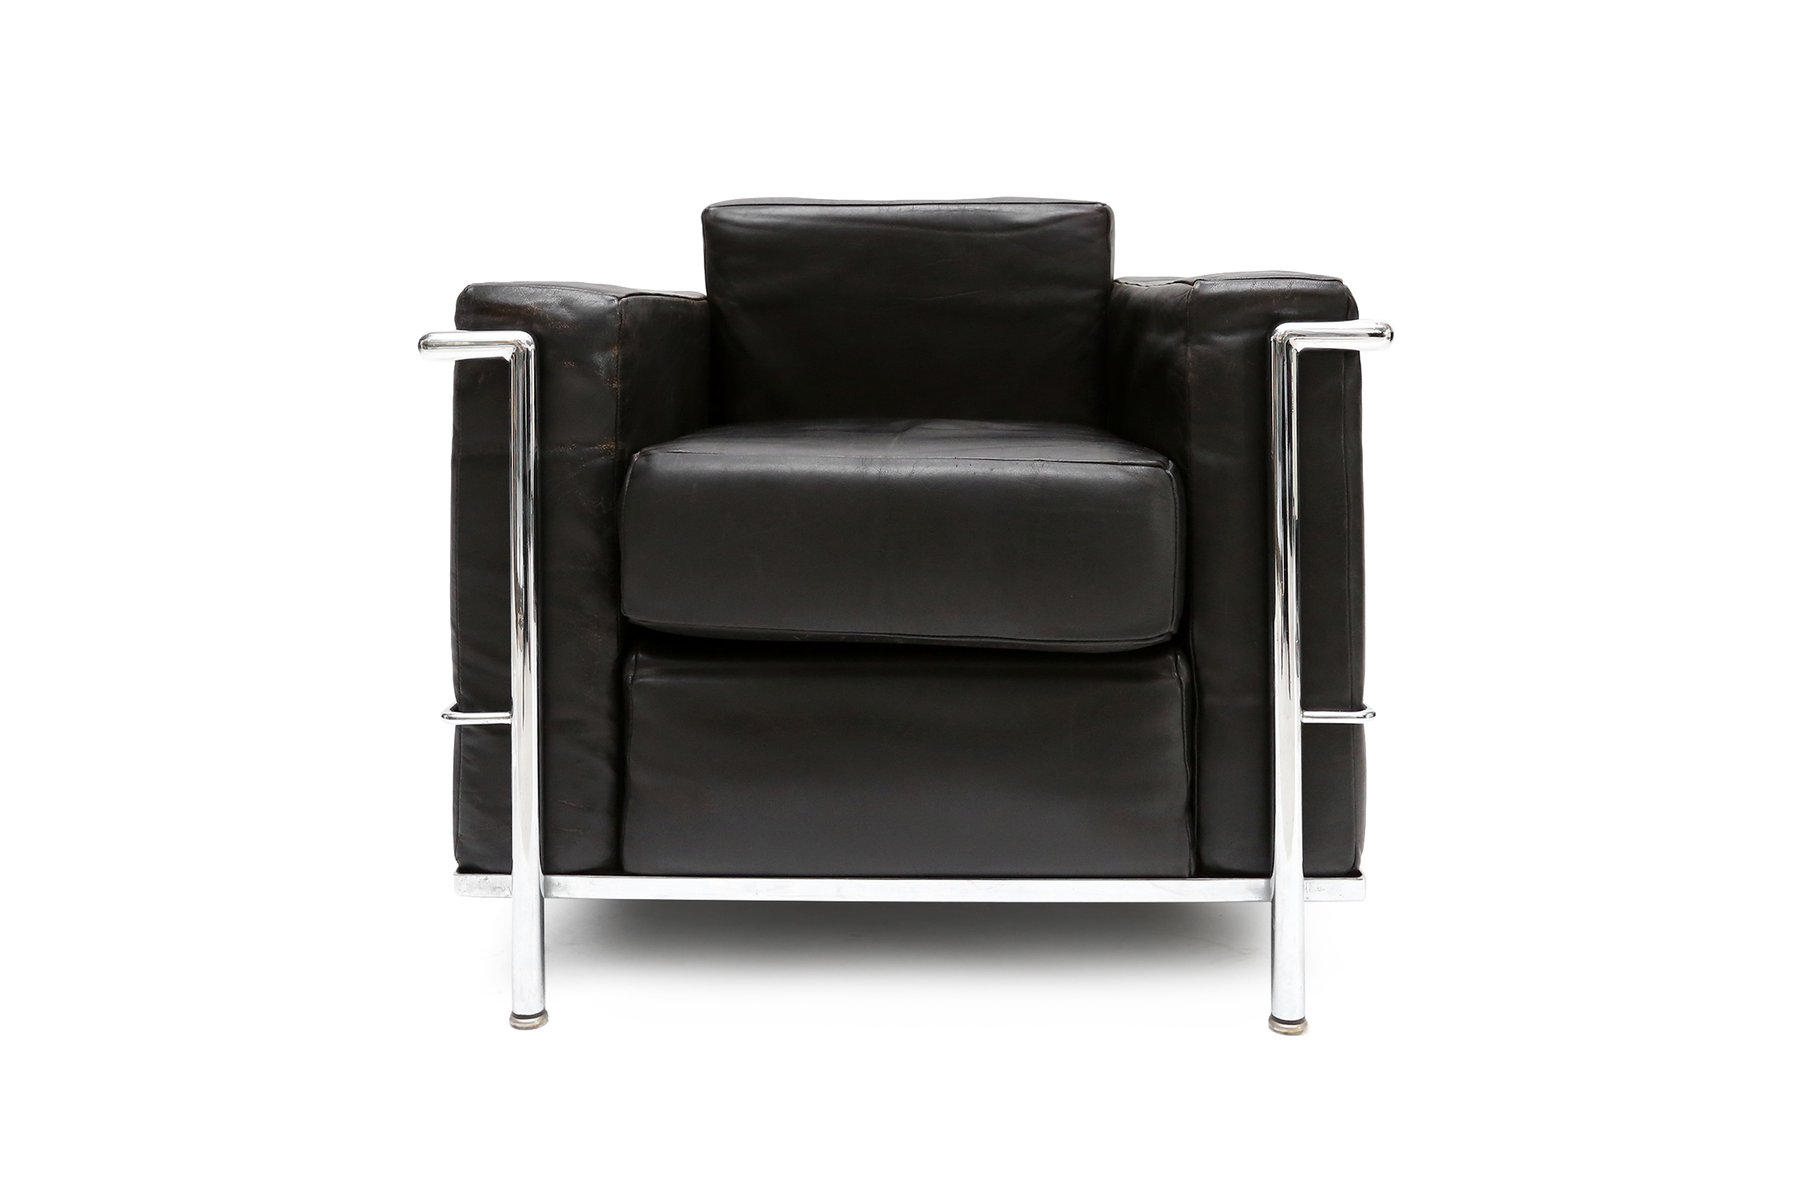 Le corbusier chair vintage - Vintage Lc 2 Armchair By Le Corbusier Jeanneret And Perriand For Cassina